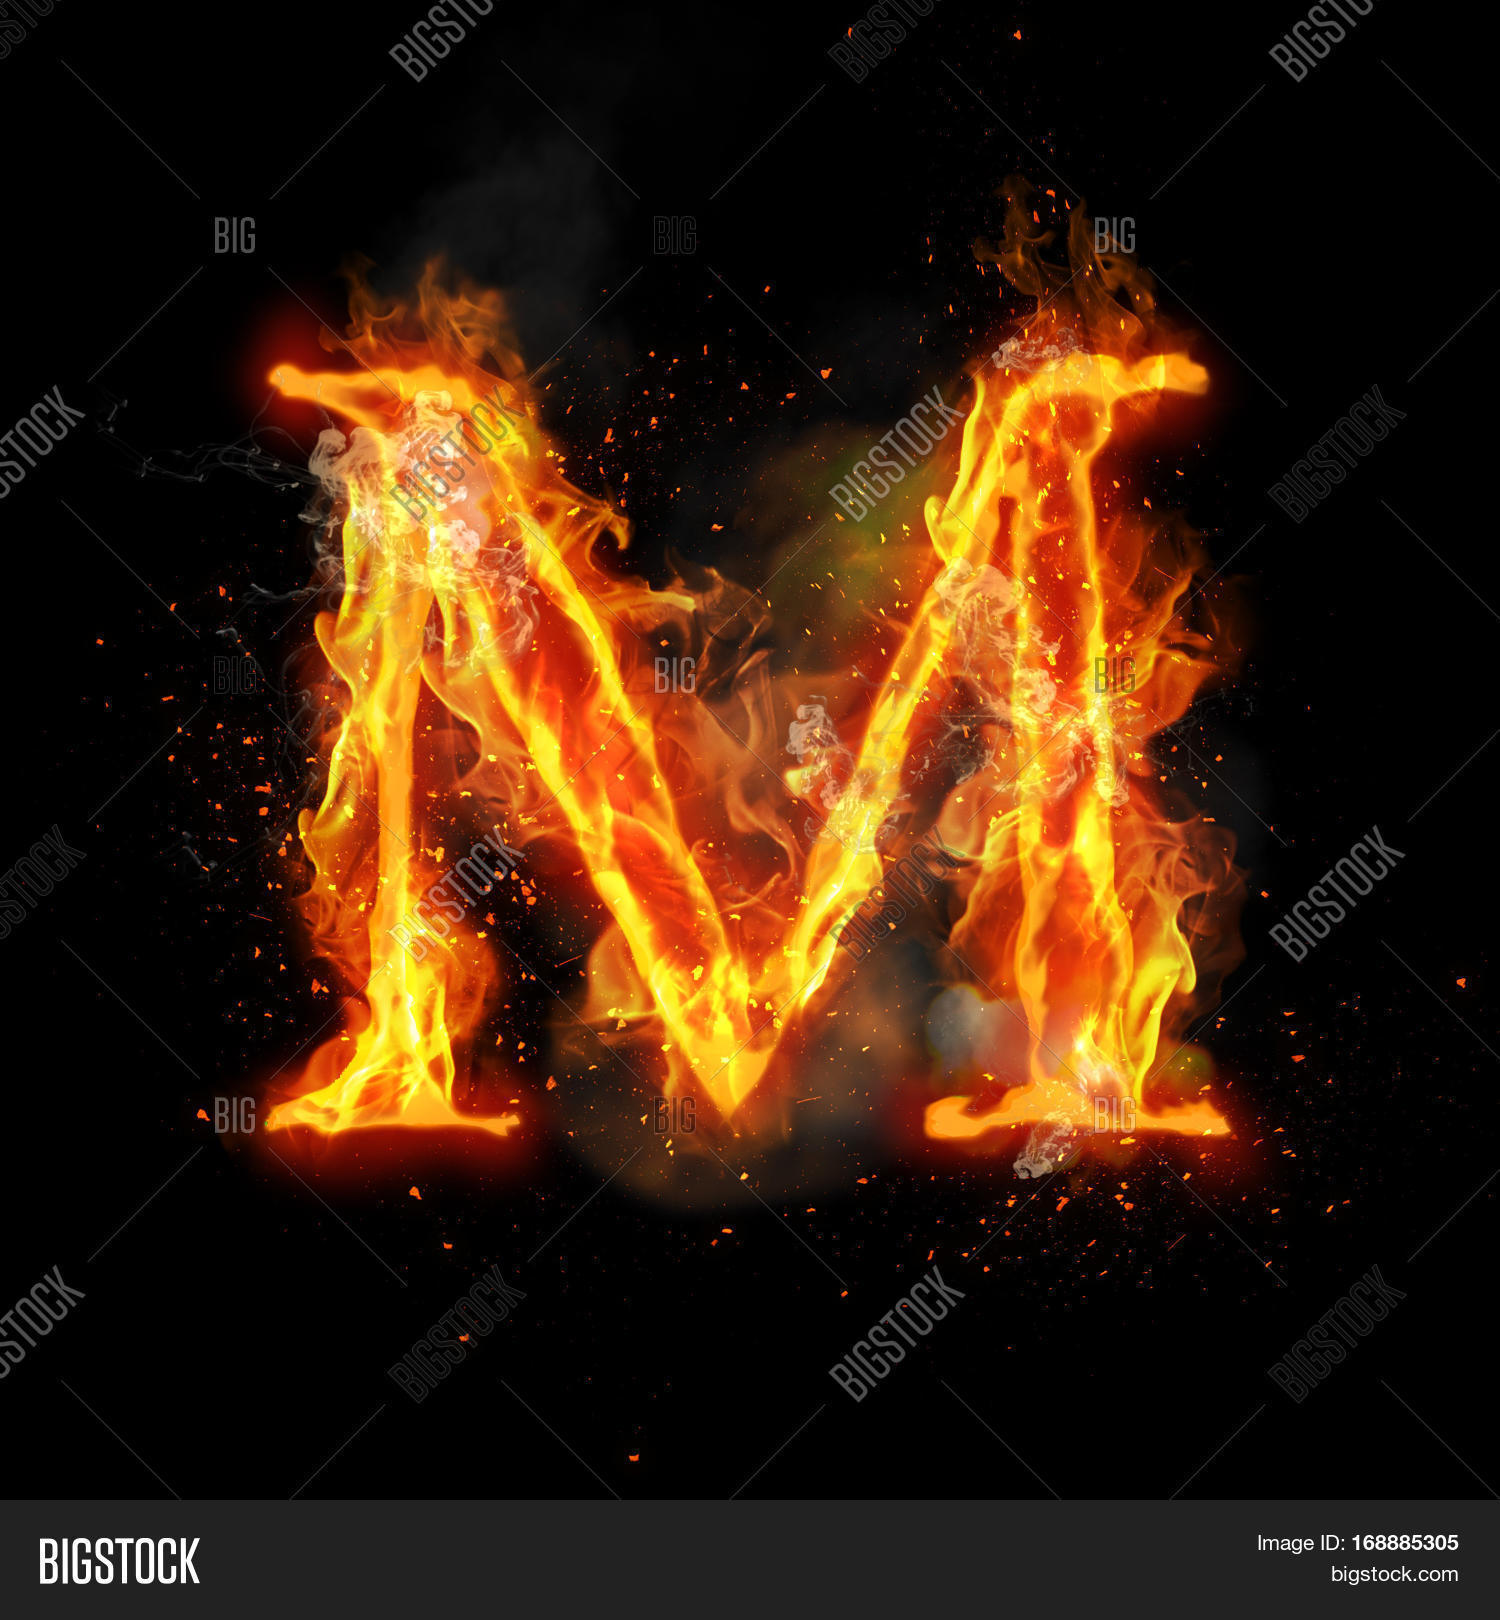 Fire Letter M Burning Image & Photo (Free Trial) | Bigstock